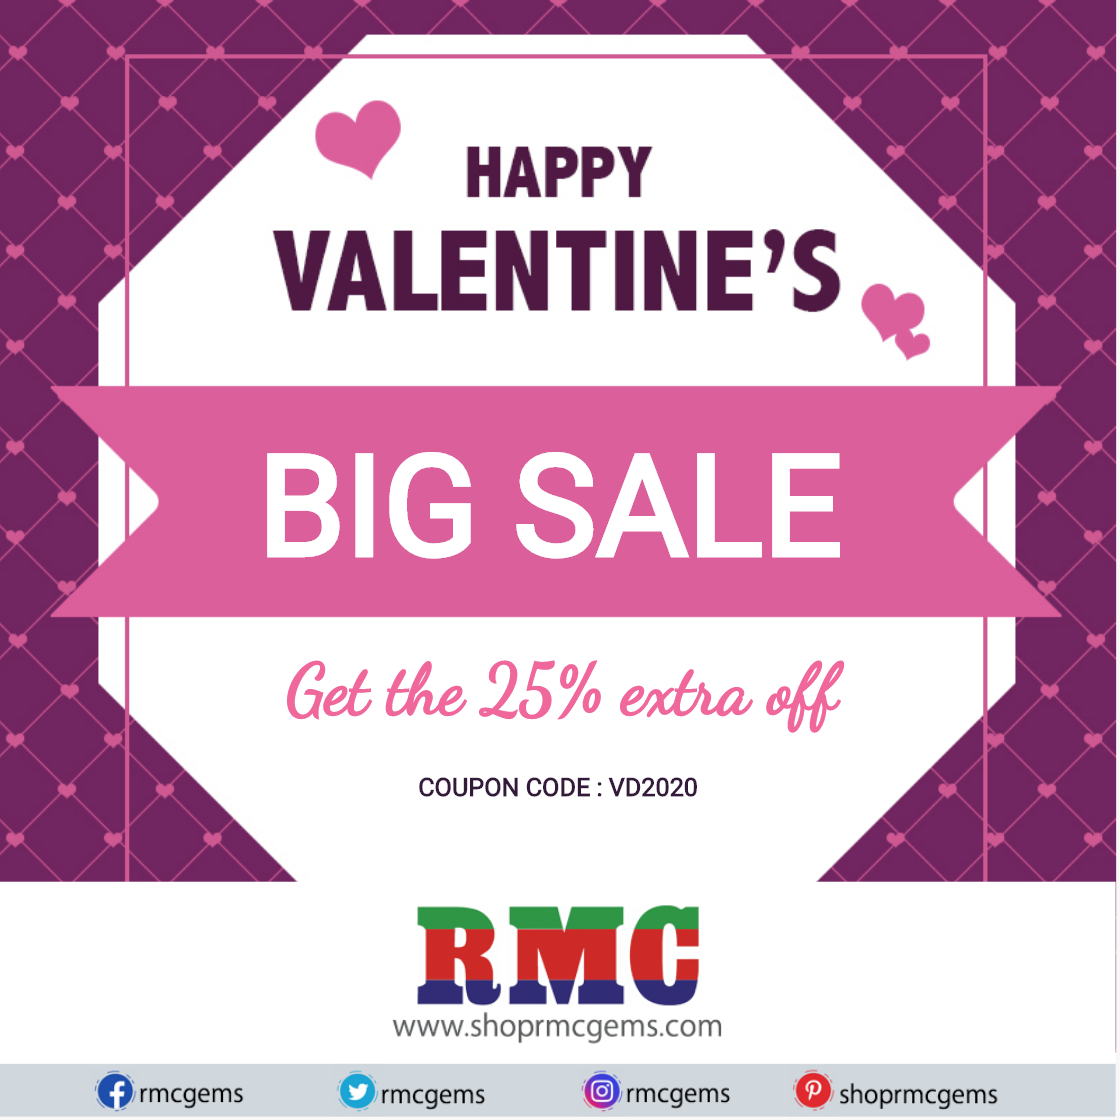 Get the 25% extra off On This Valentine's Day!